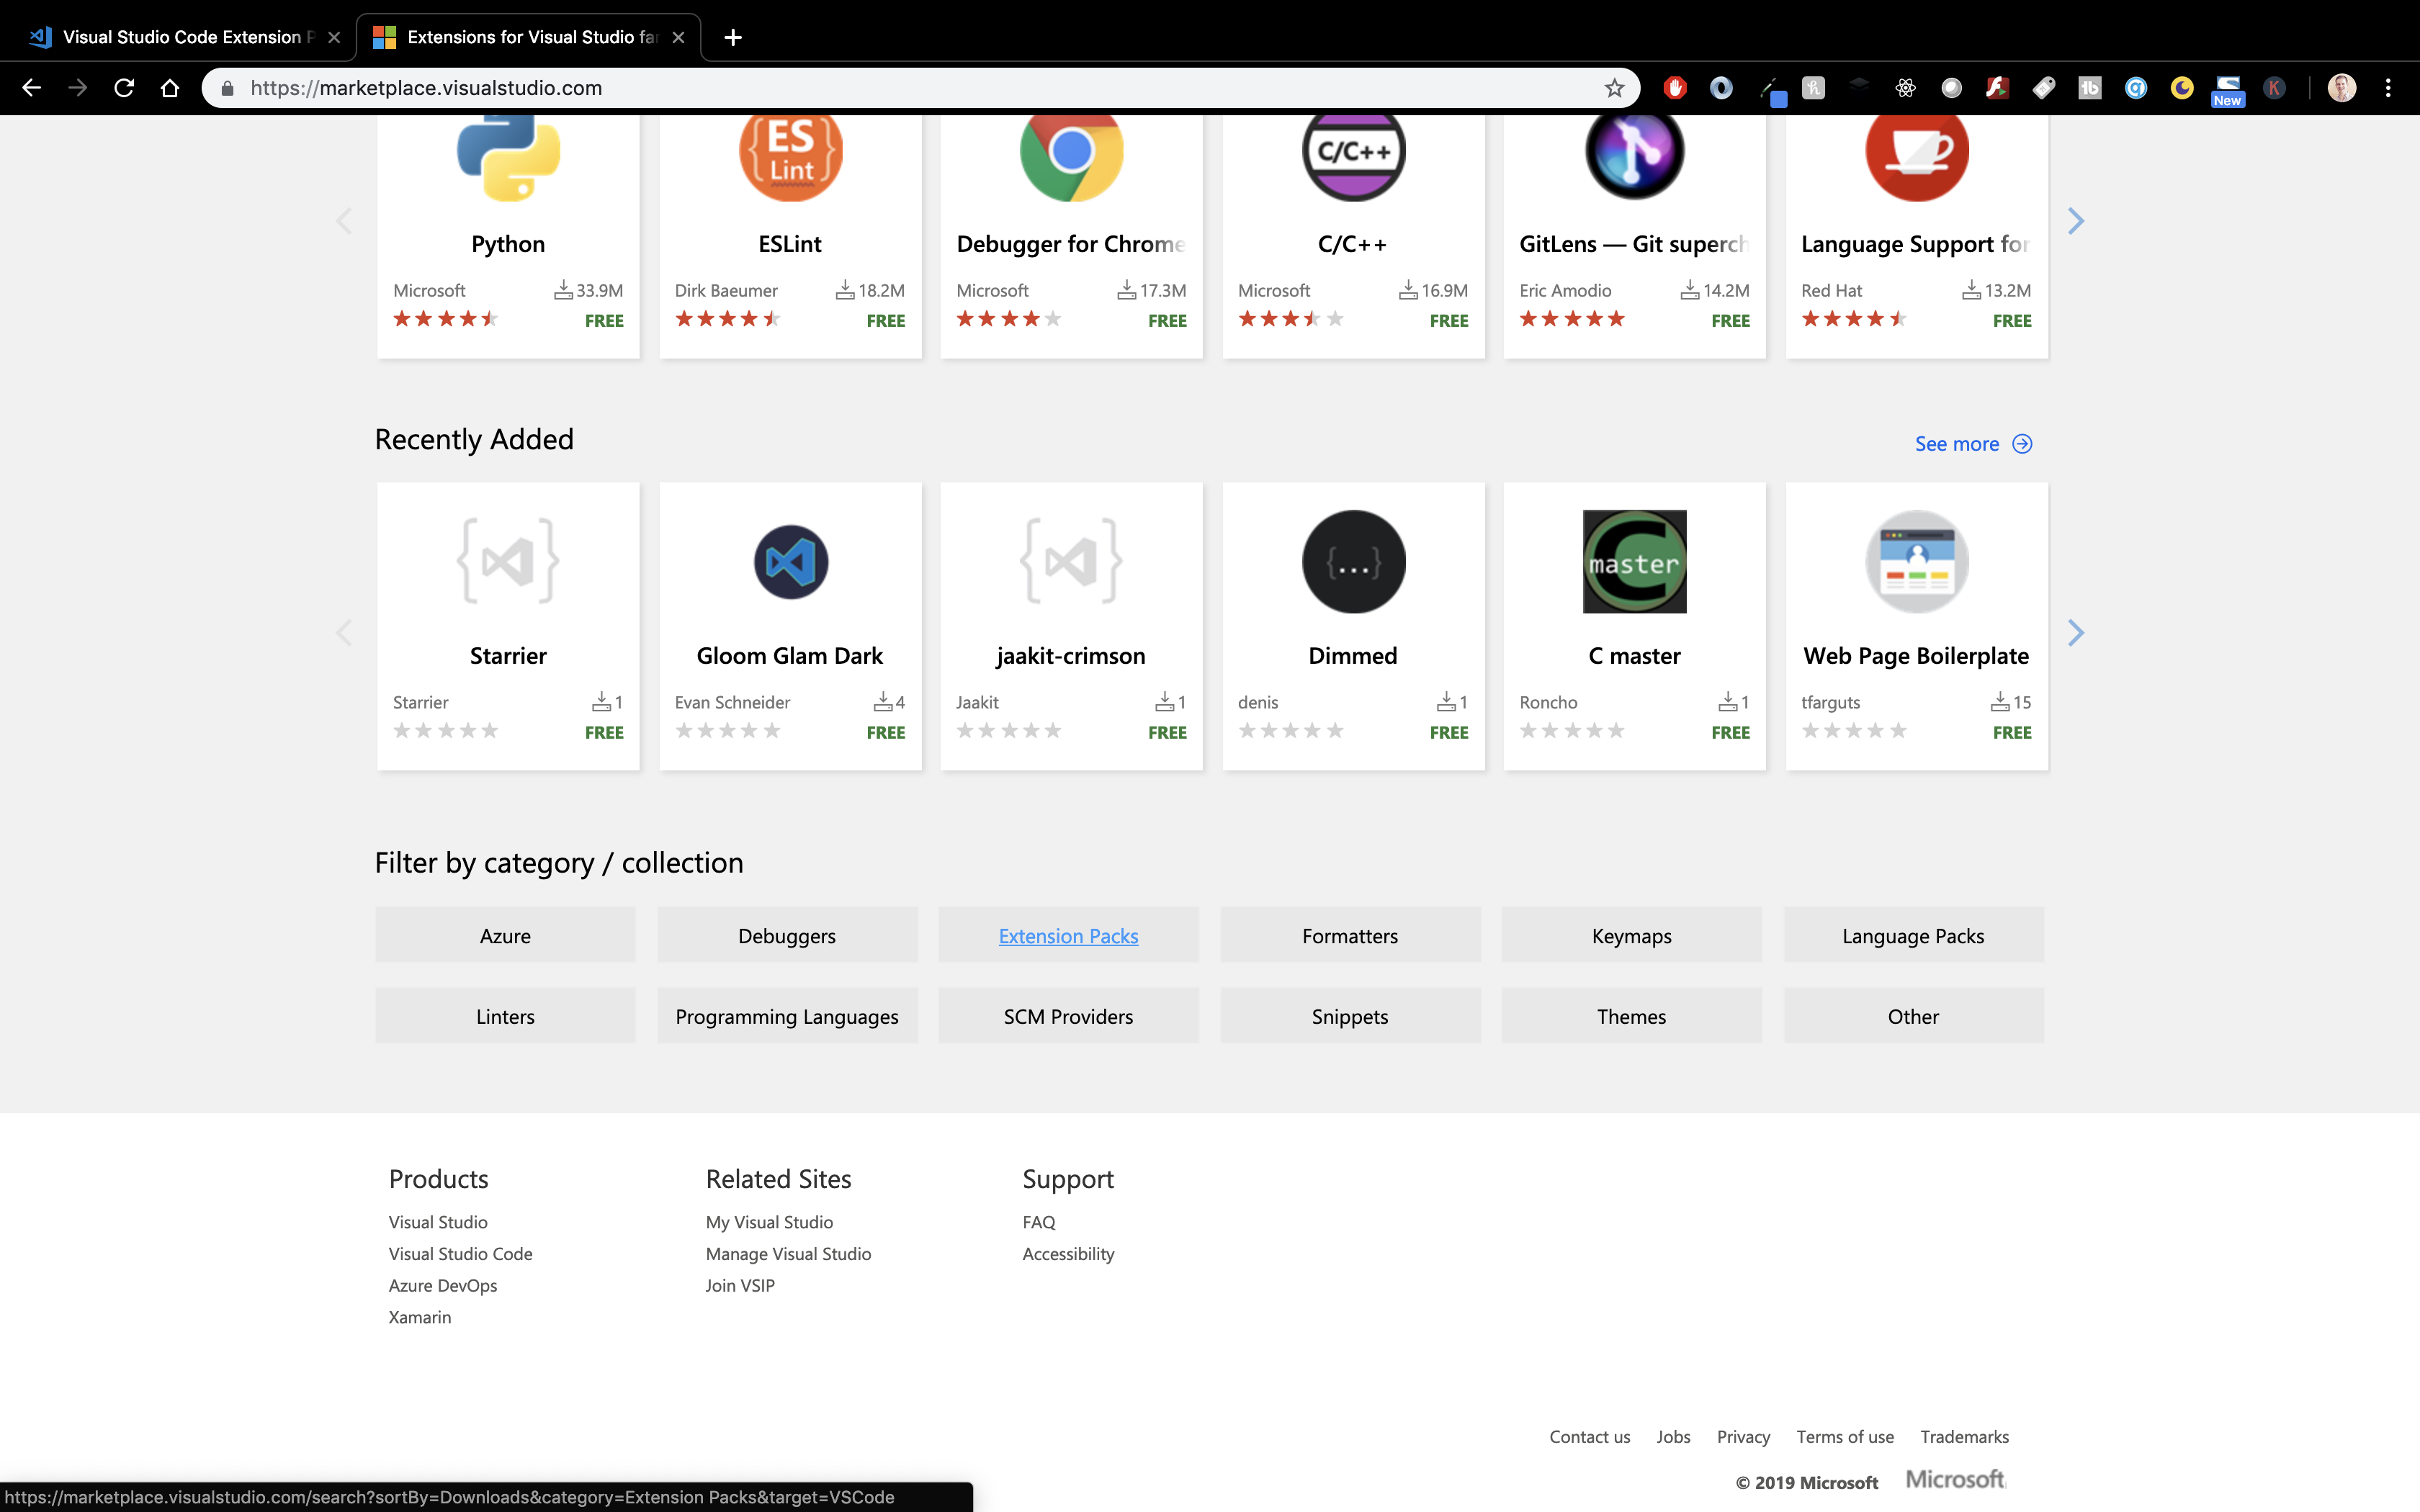 extension pack marketplace with the filter section at the bottom